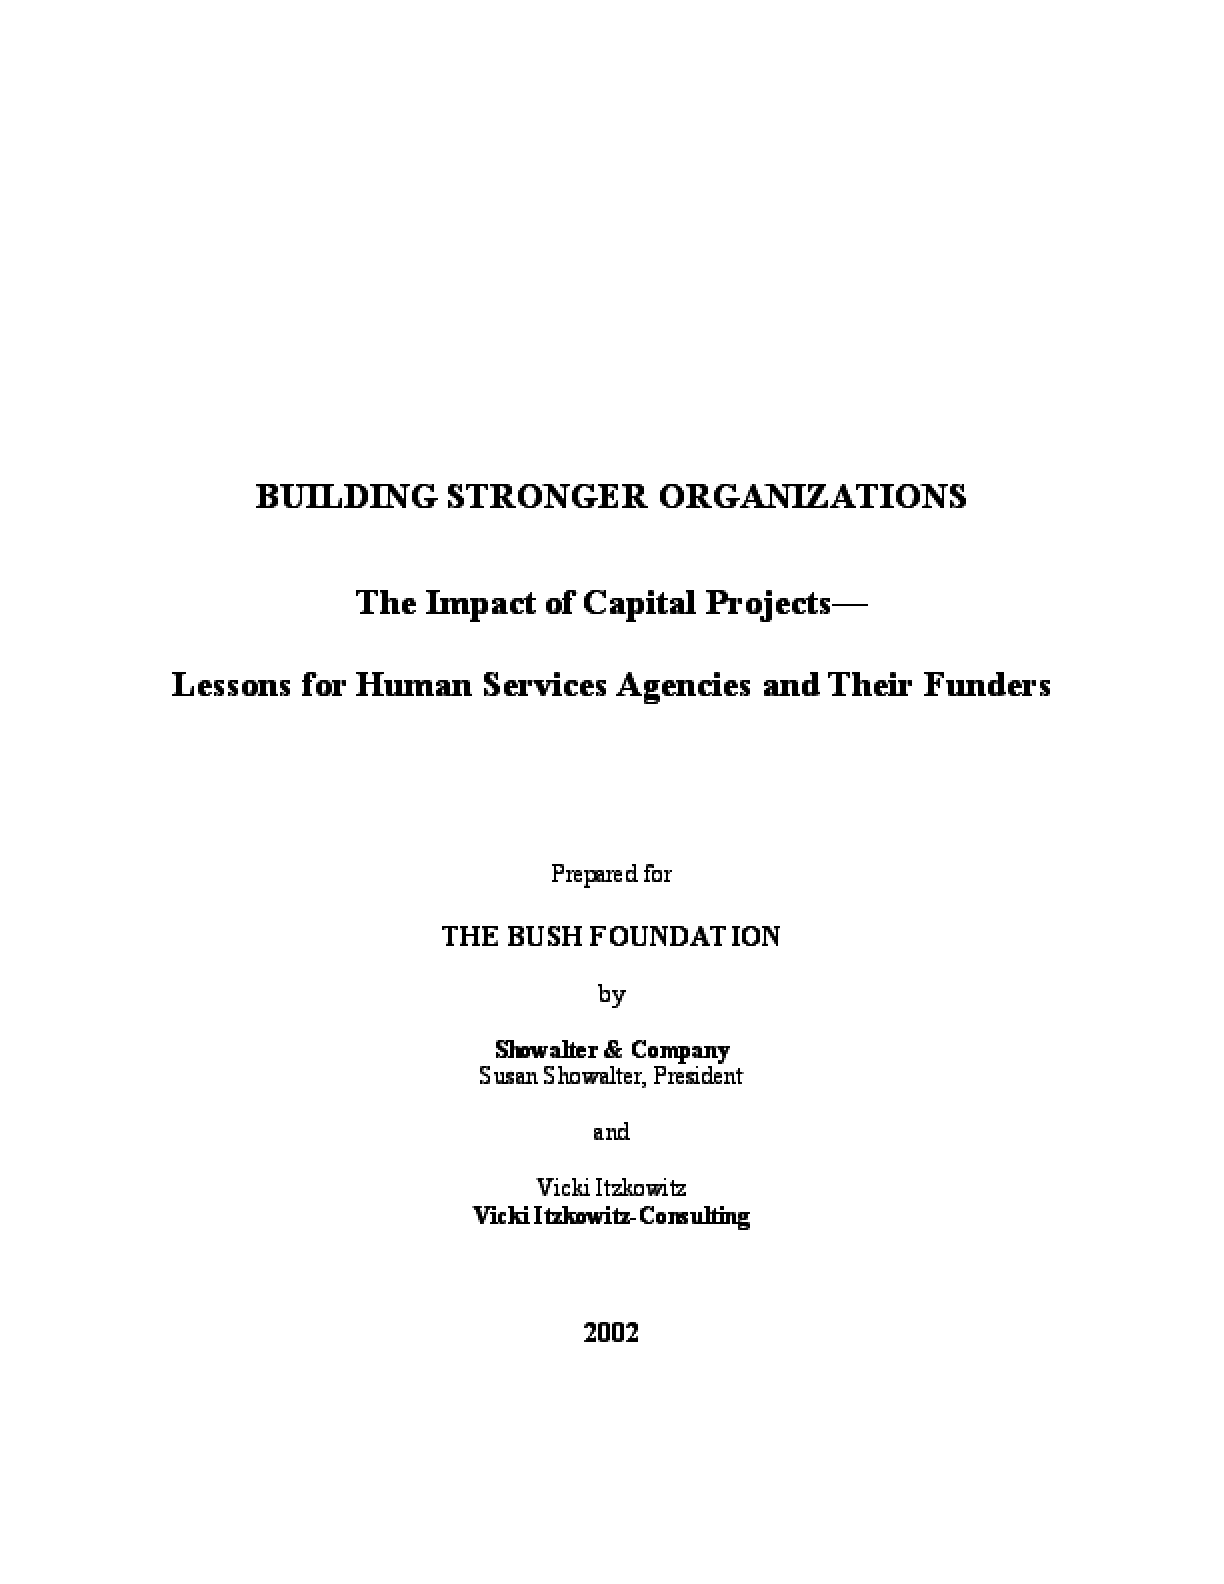 Building Stronger Organizations: The Impact of Capital Projects -- Lessons for Human Services Agencies and Their Funders